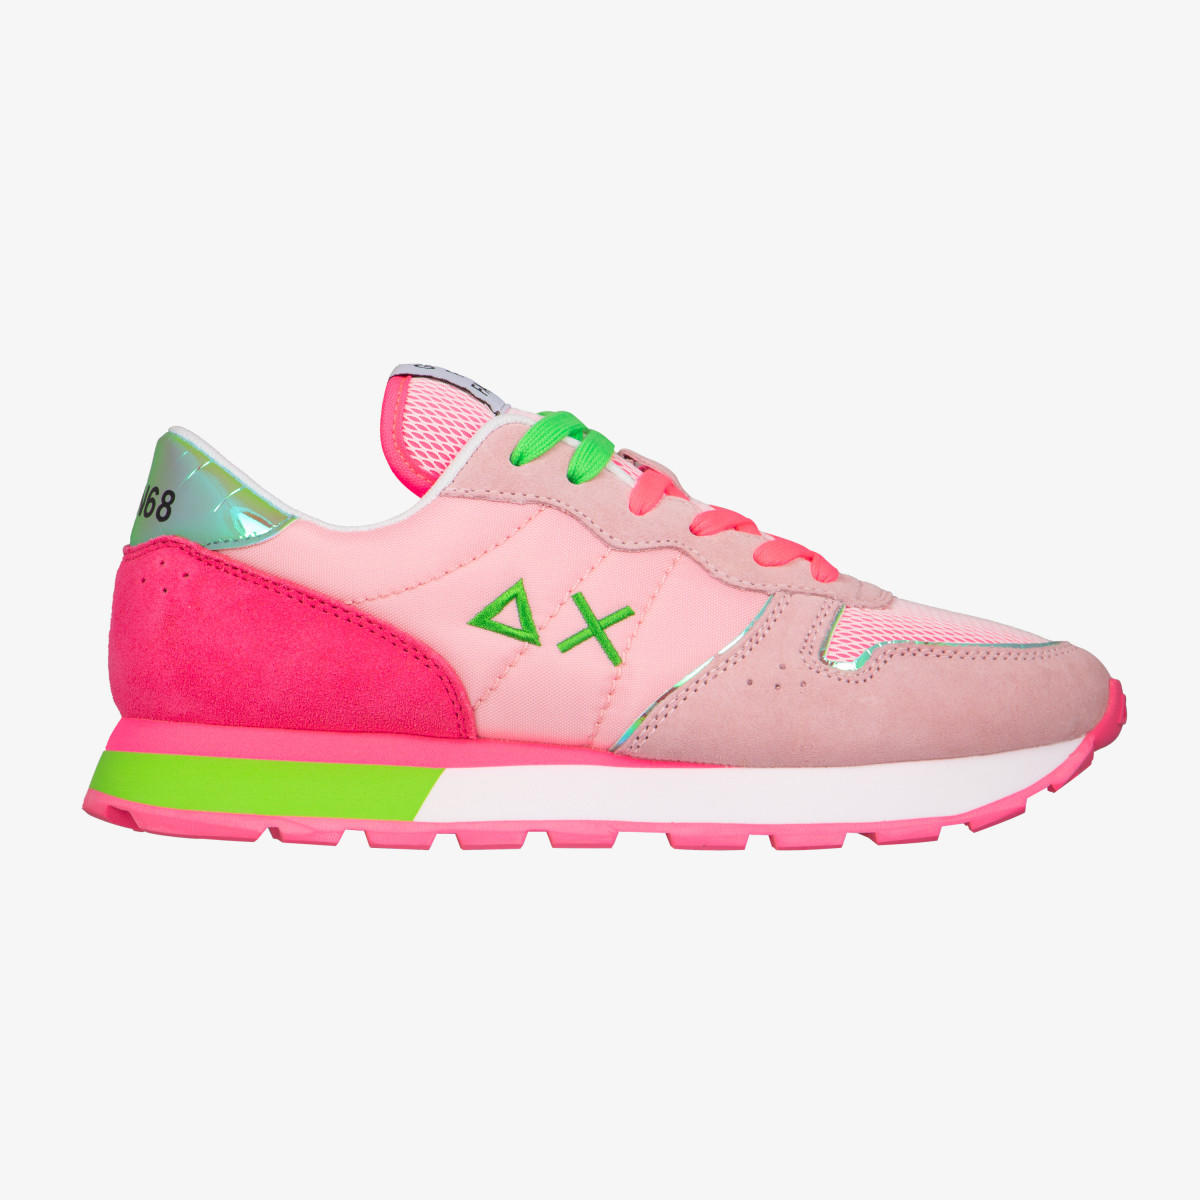 ALLY SPORTY PINK